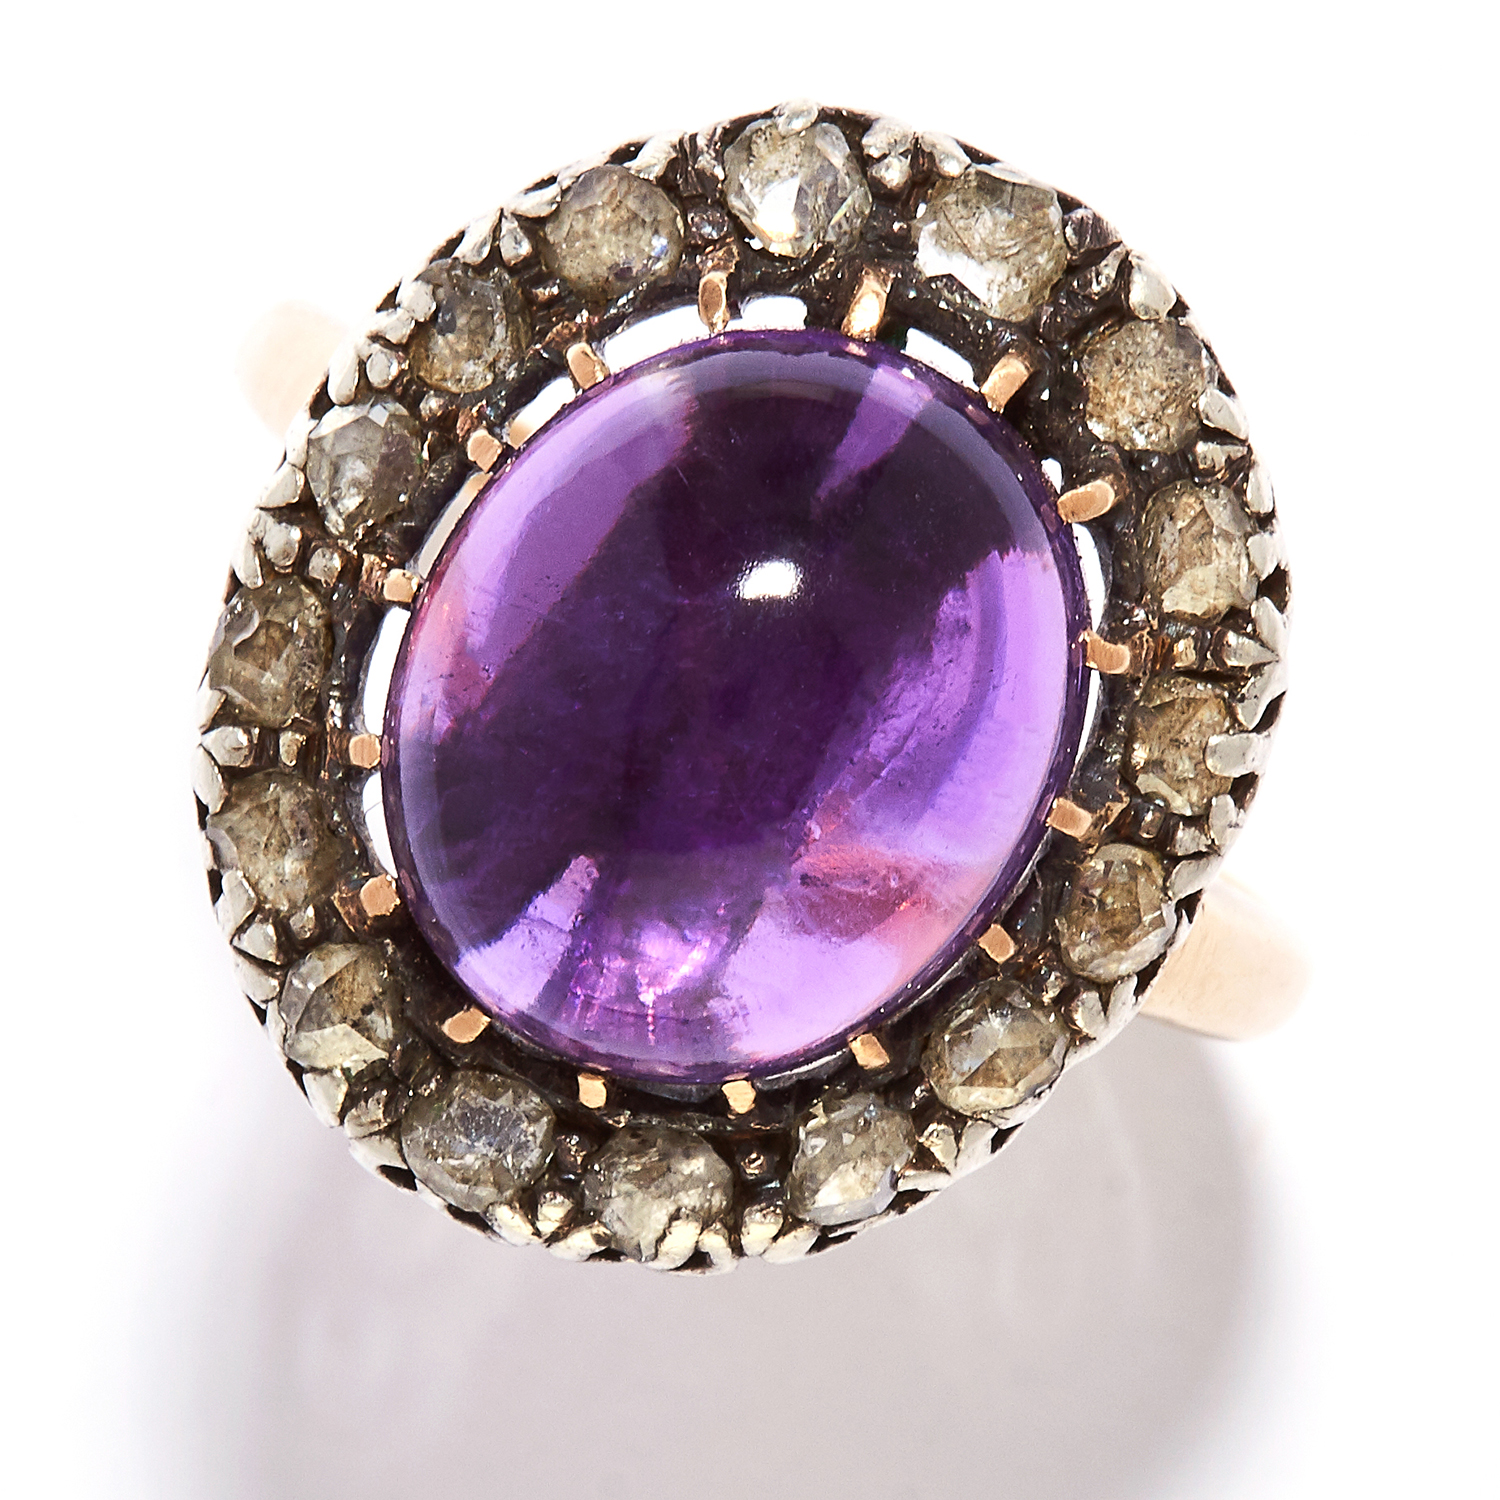 ANTIQUE AMETHYST AND DIAMOND RING in high carat yellow gold and silver, the oval cabochon amethyst